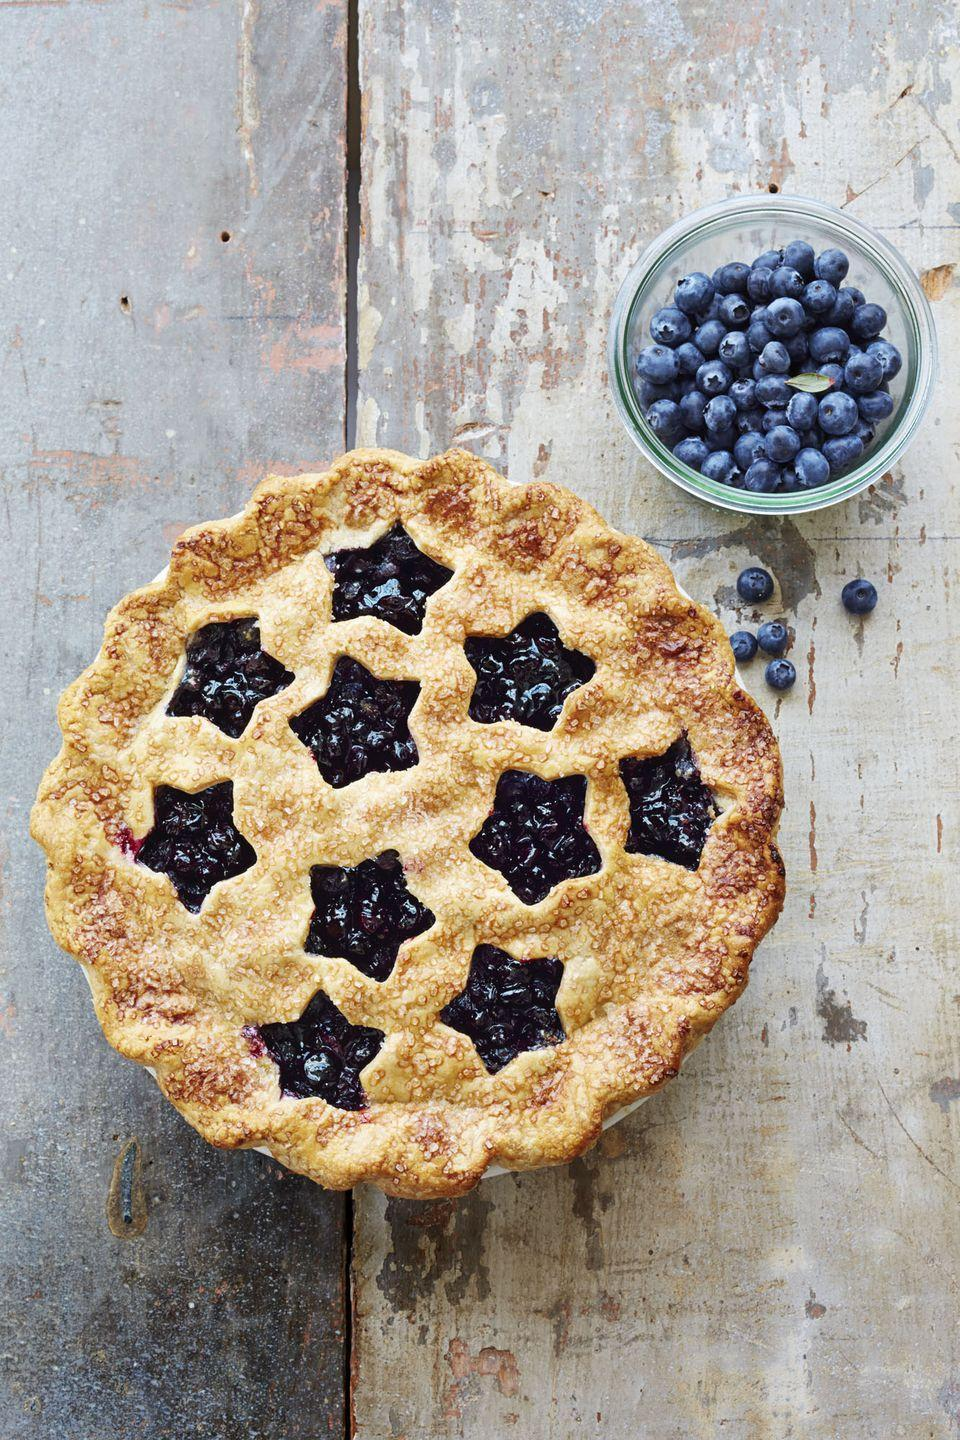 """<p>Skip the lattice weave and cut out stars from the crust instead. There, instant patriotism.</p><p><a class=""""link rapid-noclick-resp"""" href=""""https://www.amazon.com/Fox-Run-3626-Cookie-Stainless/dp/B001ET5YRU?tag=syn-yahoo-20&ascsubtag=%5Bartid%7C10055.g.3483%5Bsrc%7Cyahoo-us"""" rel=""""nofollow noopener"""" target=""""_blank"""" data-ylk=""""slk:SHOP STAR COOKIE CUTTERS"""">SHOP STAR COOKIE CUTTERS</a></p><p><em><a href=""""https://www.goodhousekeeping.com/food-recipes/dessert/g1328/fruit-pies/?slide=2"""" rel=""""nofollow noopener"""" target=""""_blank"""" data-ylk=""""slk:Get the recipe for Cutaway Blueberry Pie »"""" class=""""link rapid-noclick-resp"""">Get the recipe for Cutaway Blueberry Pie »</a></em></p>"""